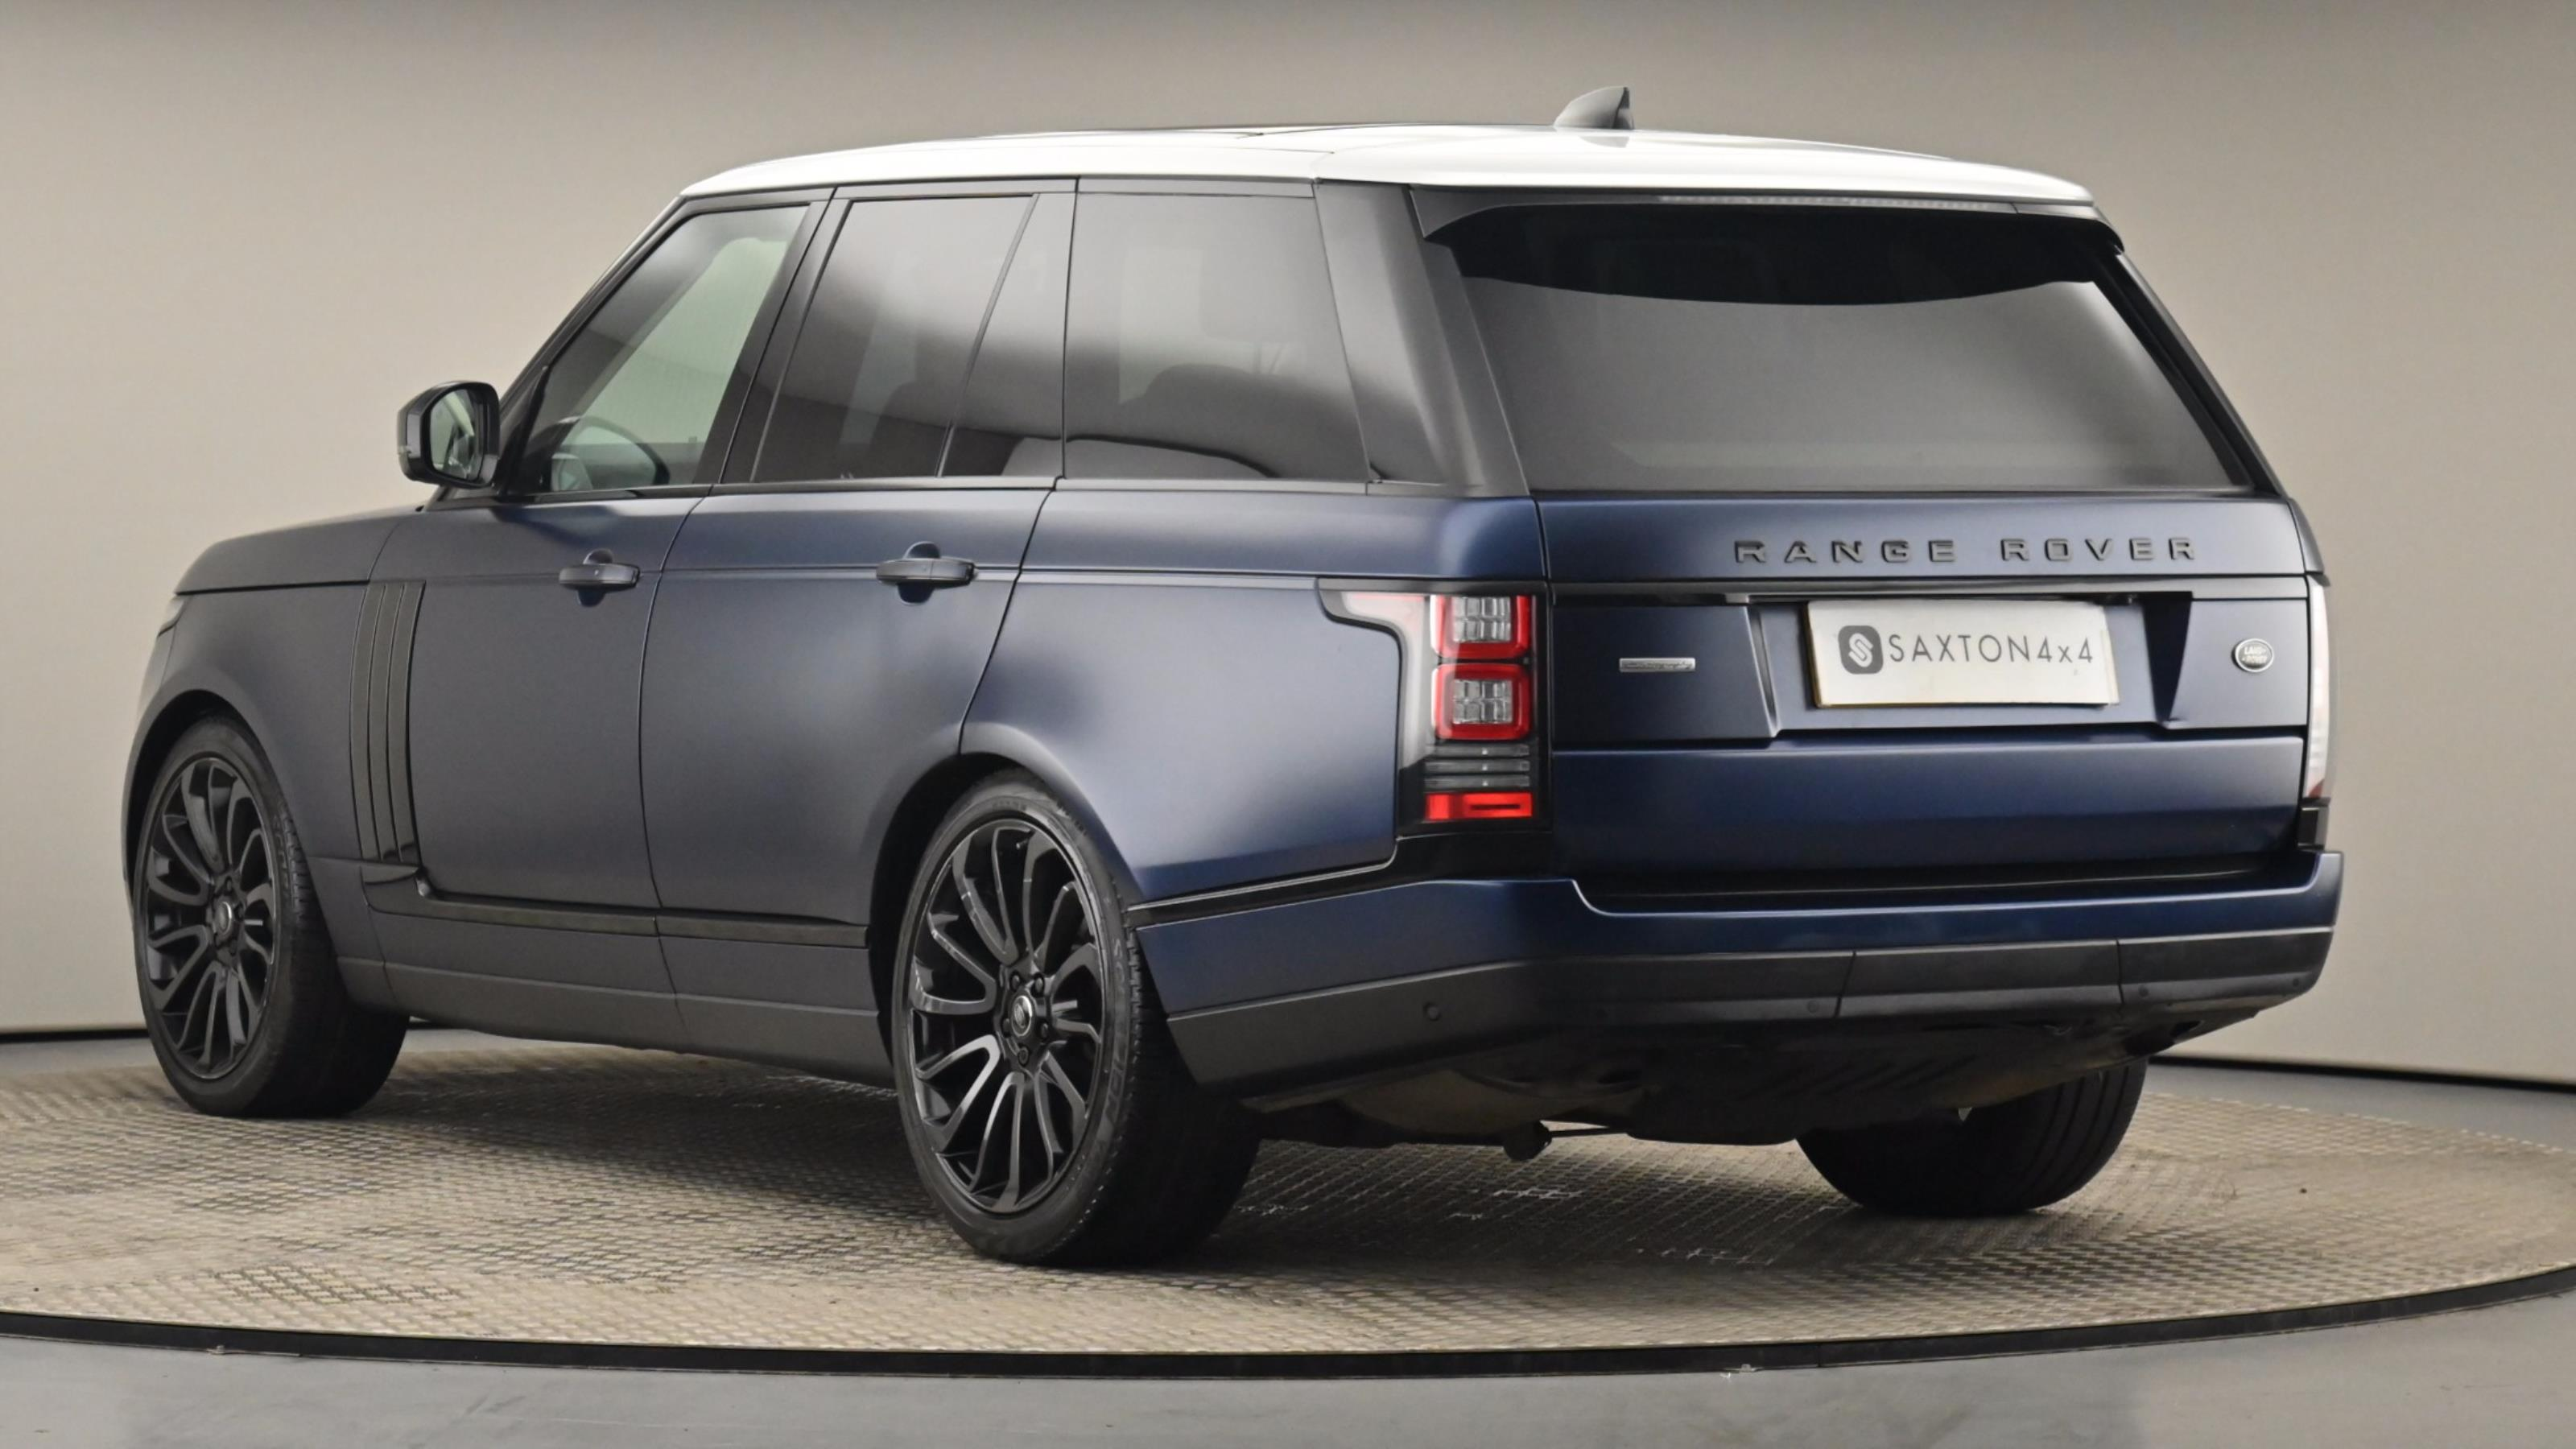 Used 2017 Land Rover RANGE ROVER 5.0 V8 Supercharged Autobiography 4dr Auto [SS] BLUE at Saxton4x4